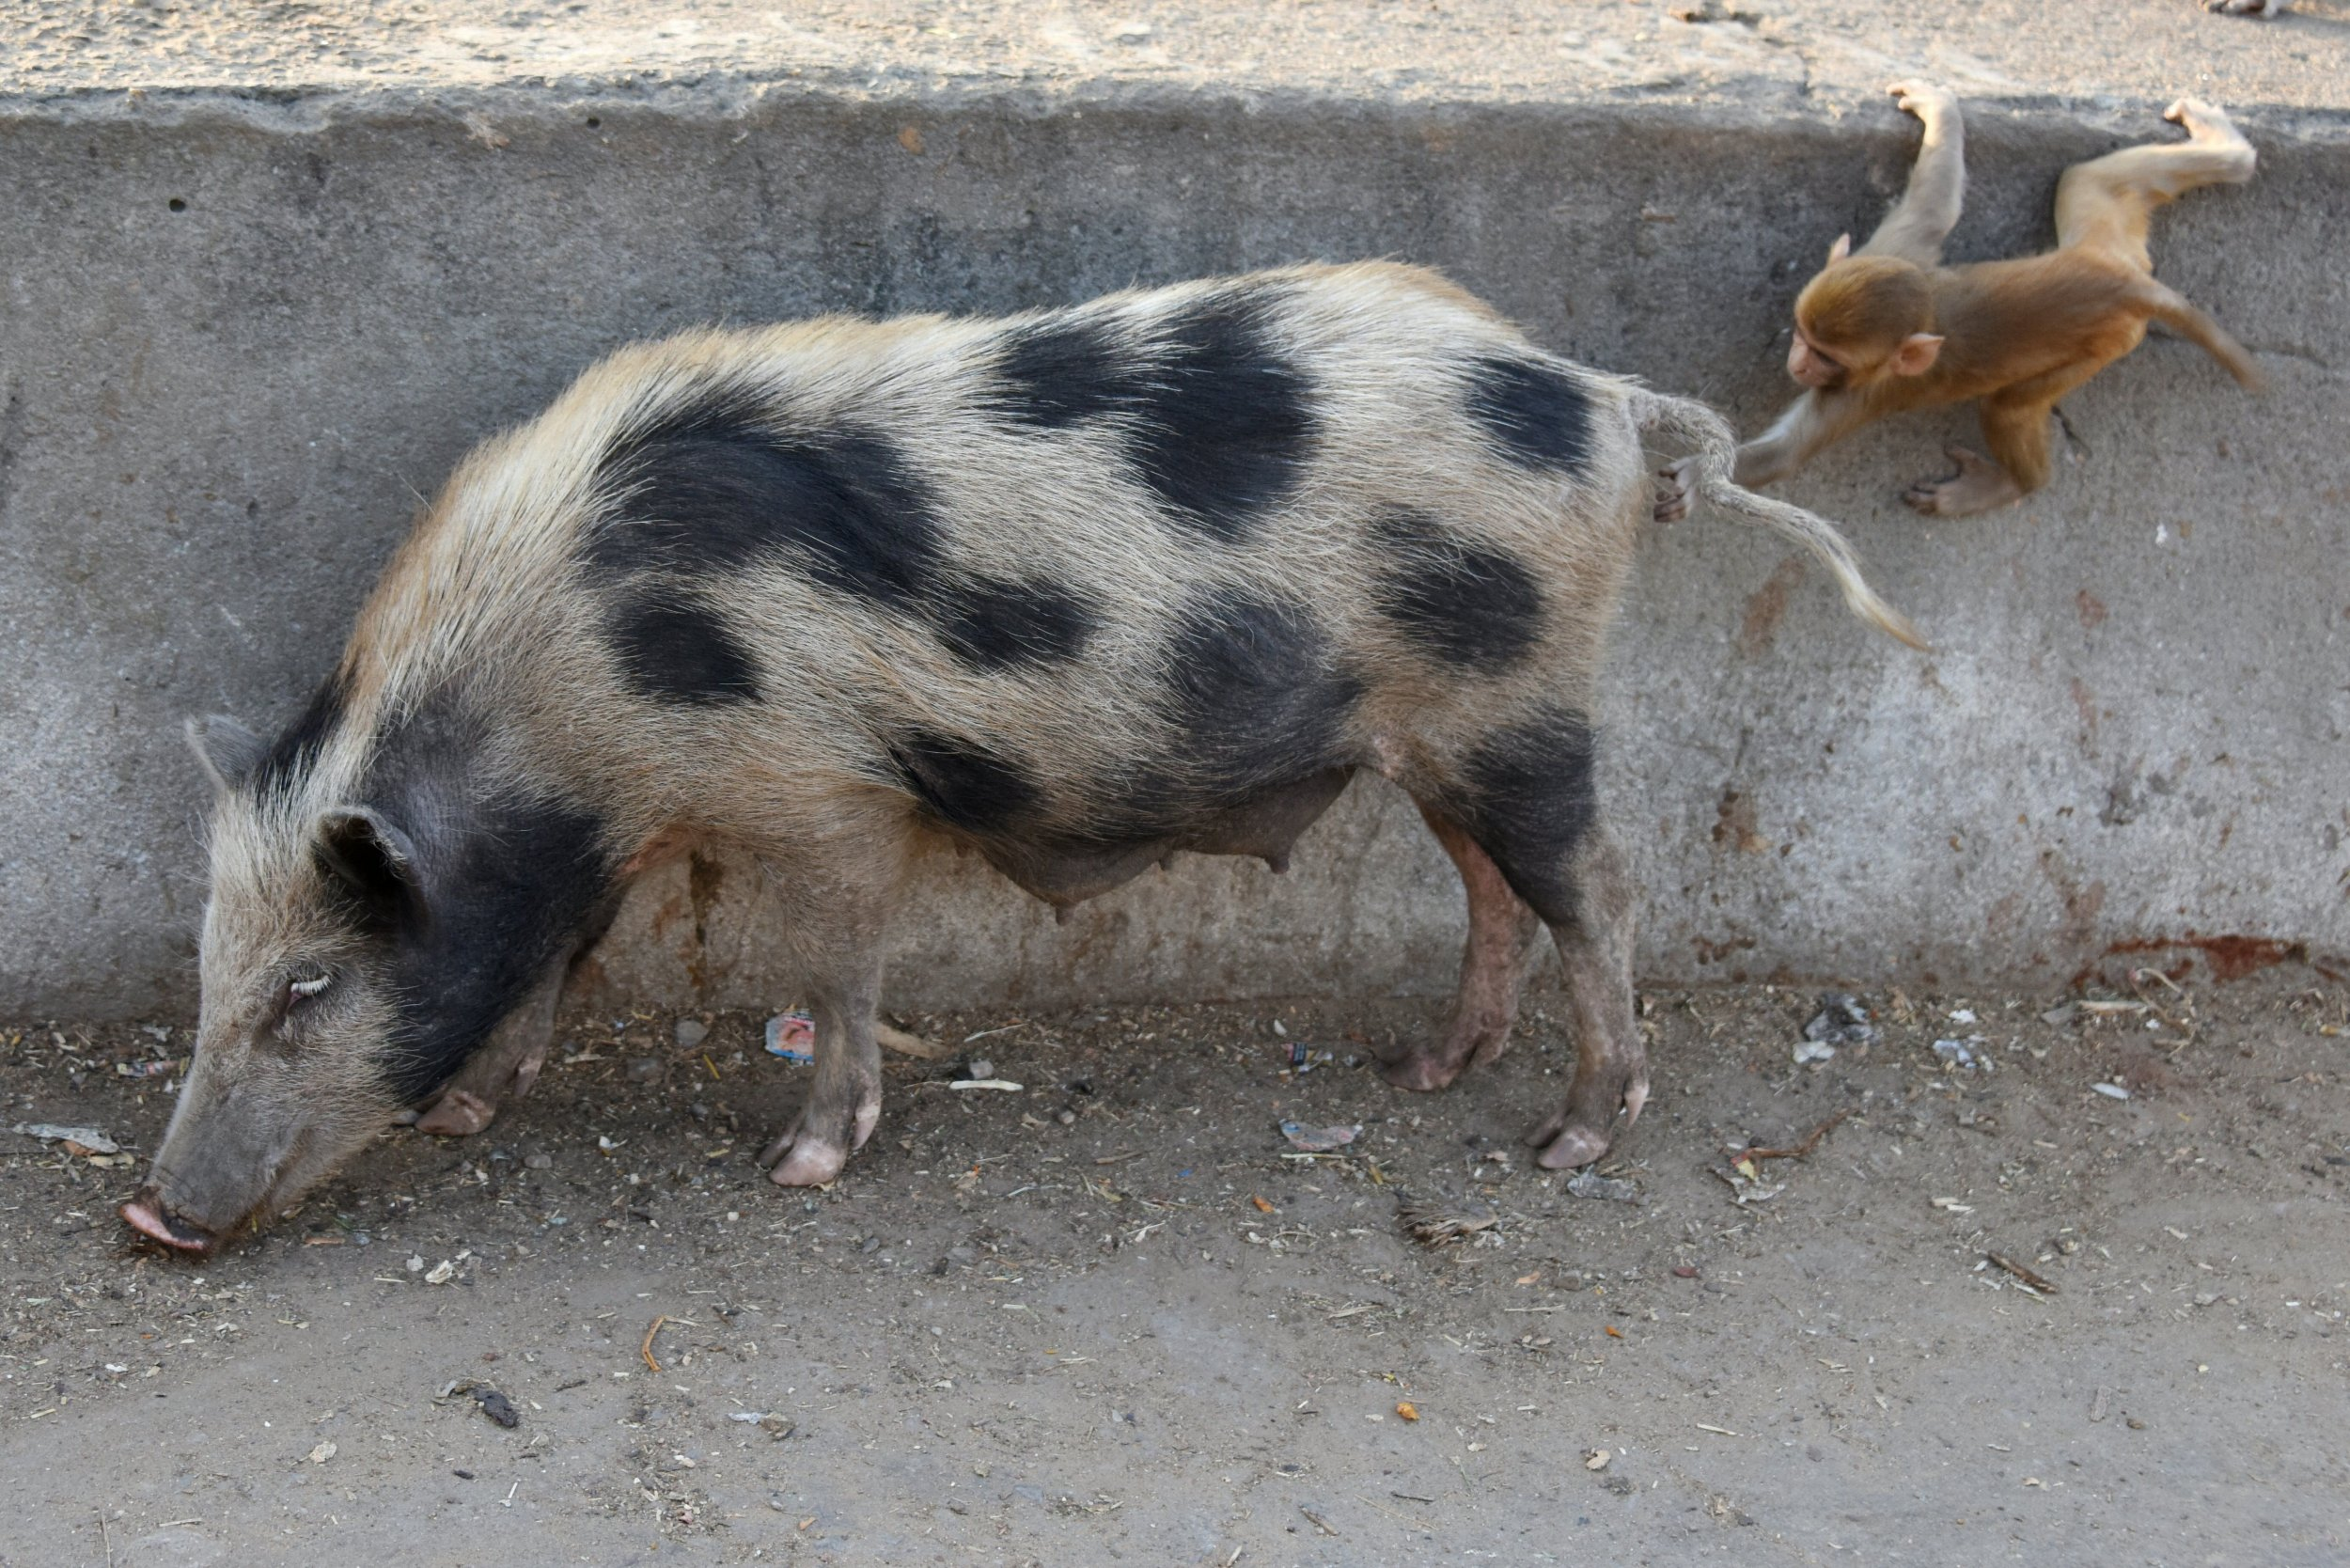 tapeworm_infected_pig_india